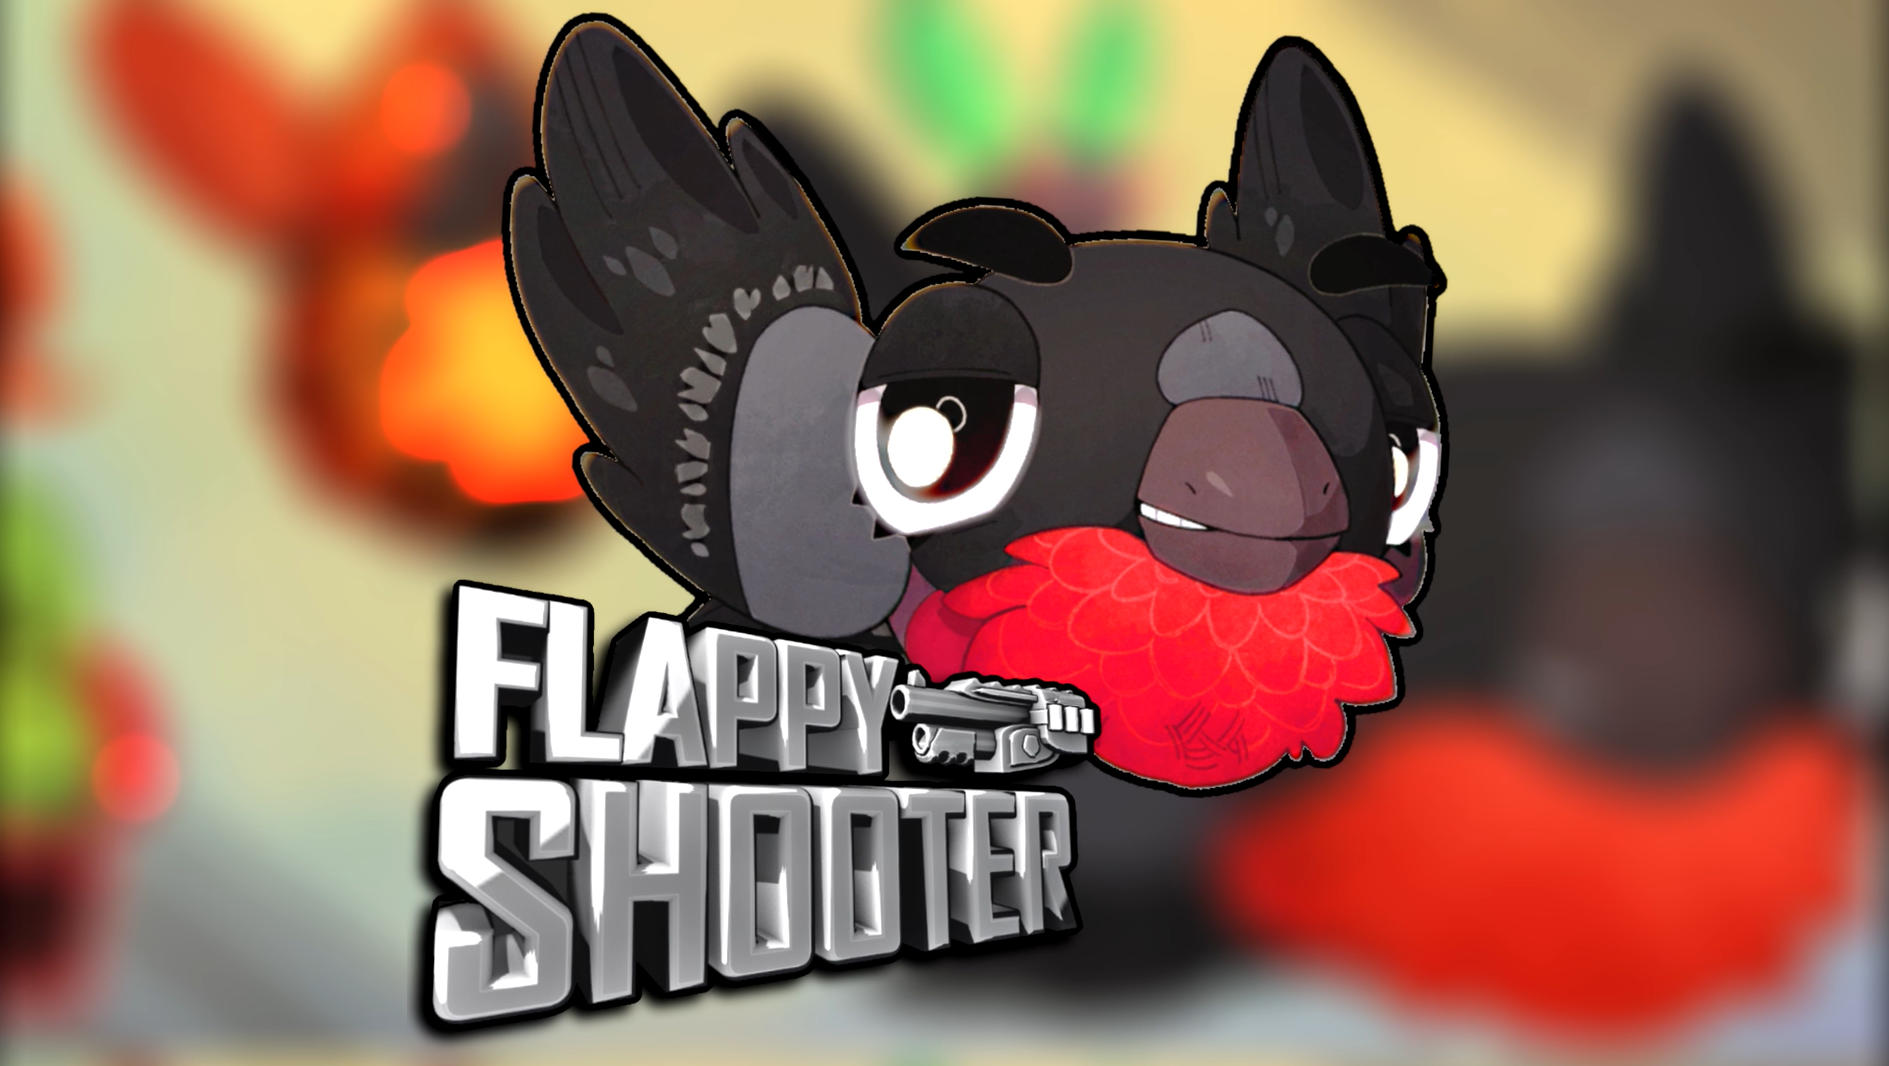 Flappy Shooter Free Download